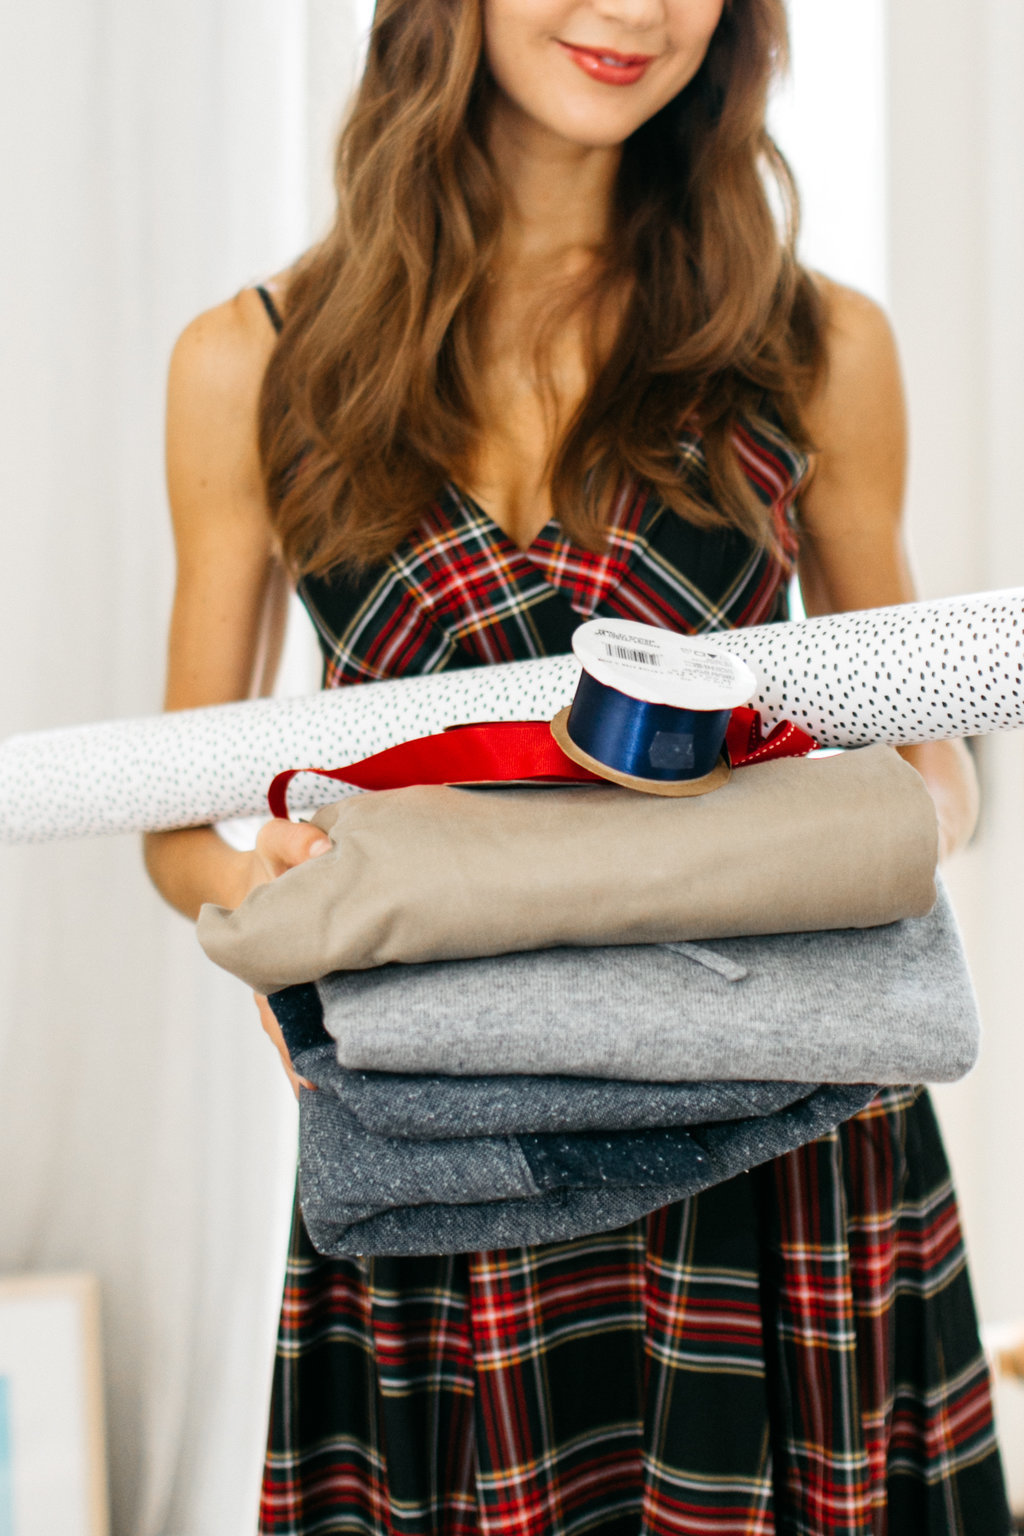 J. Crew holiday gifts